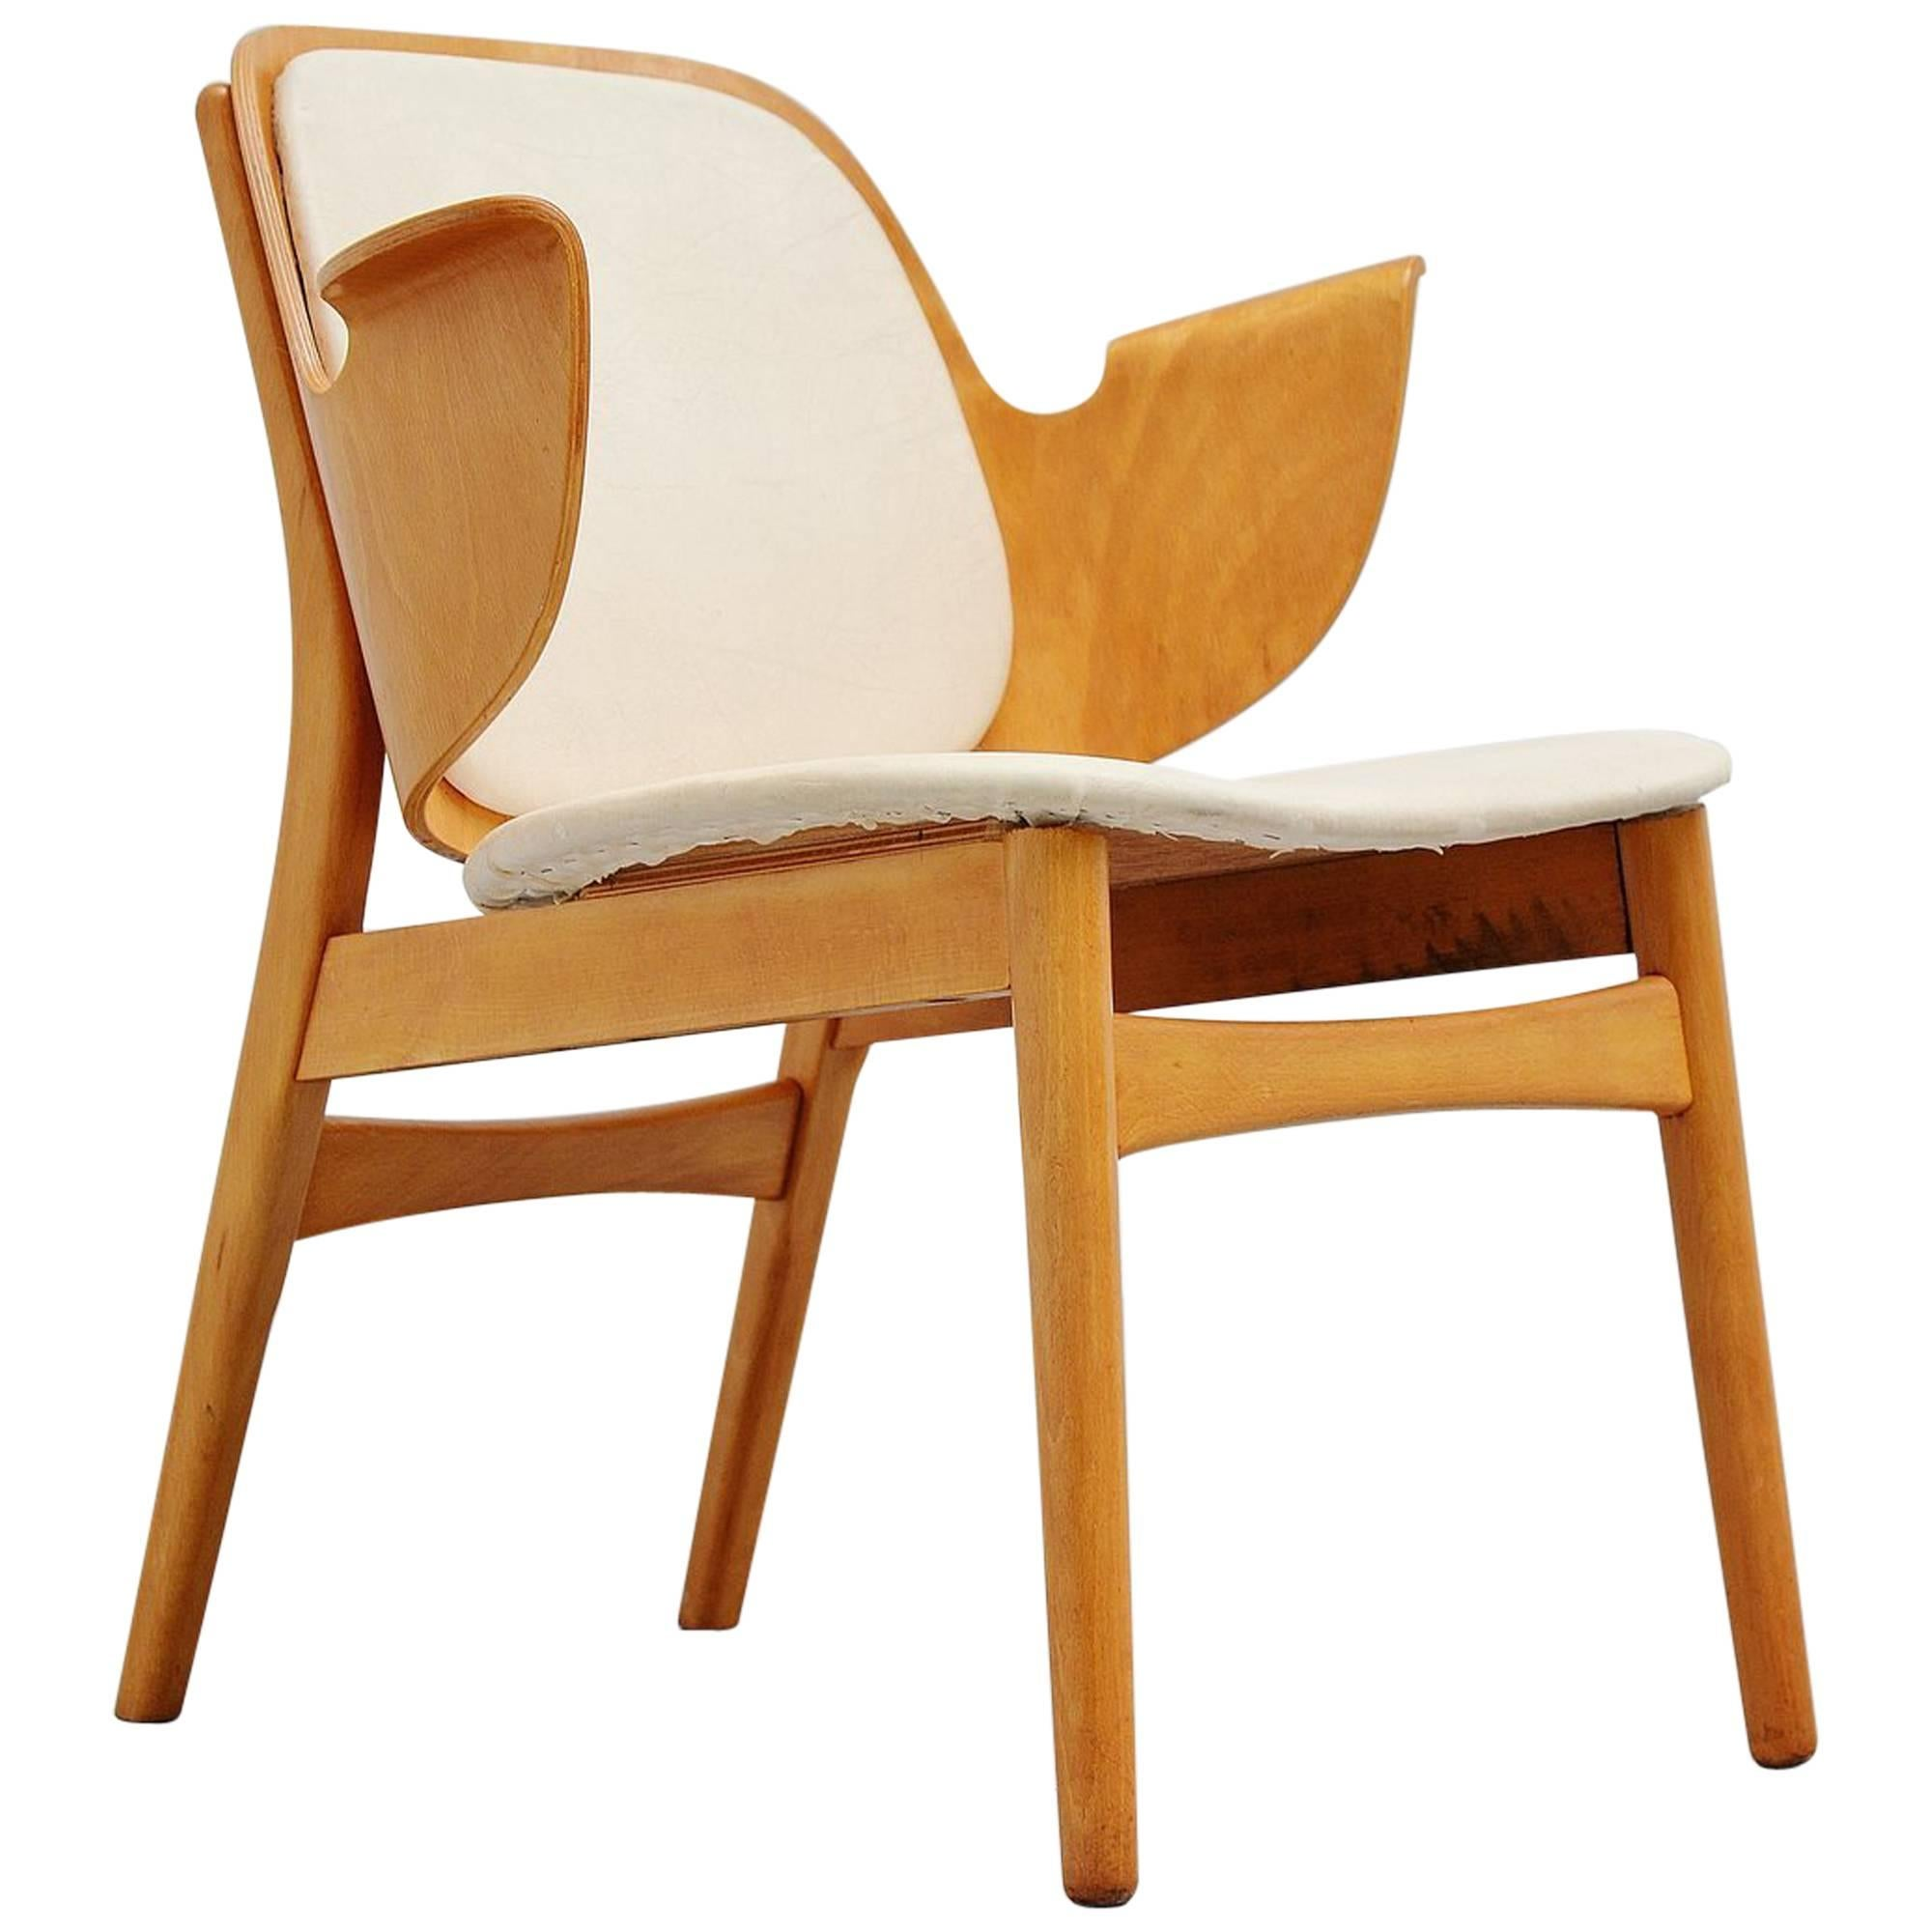 Hans Olsen Birch Plywood Lounge Chair Bramin Denmark, 1950 1